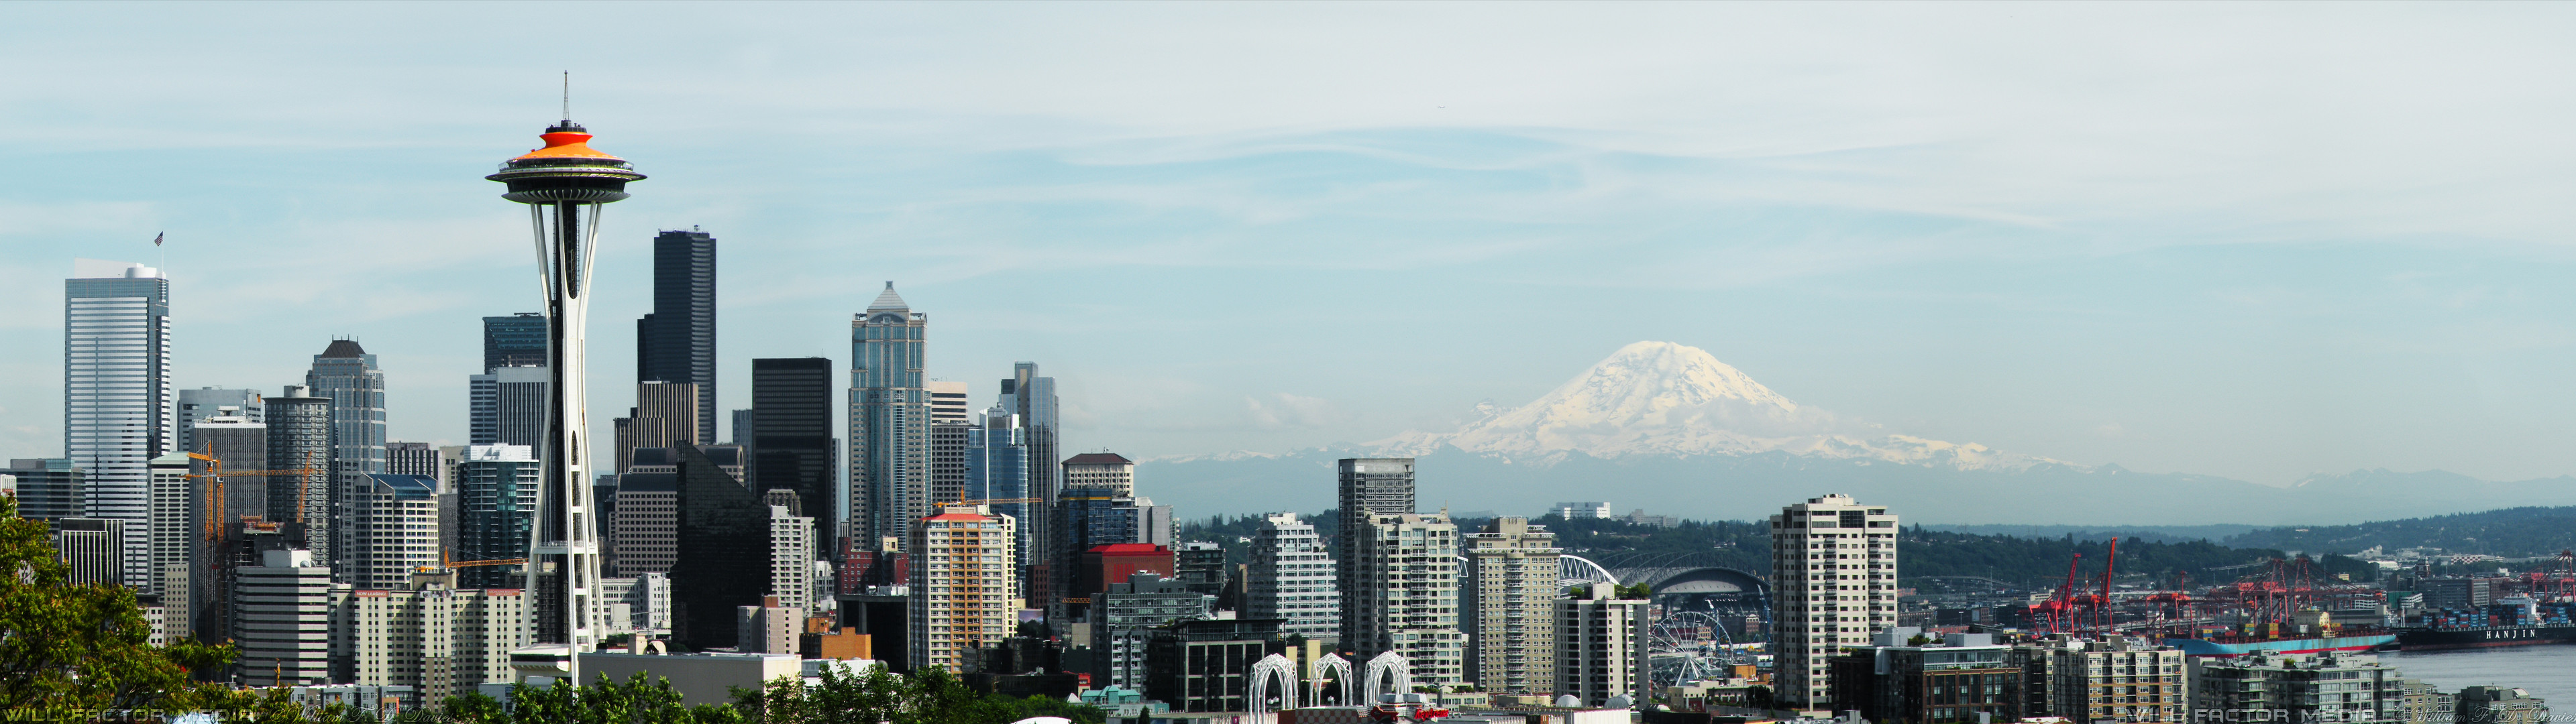 3840x1080 ... Dual Monitor () Seattle Wallpaper by WillFactorMedia